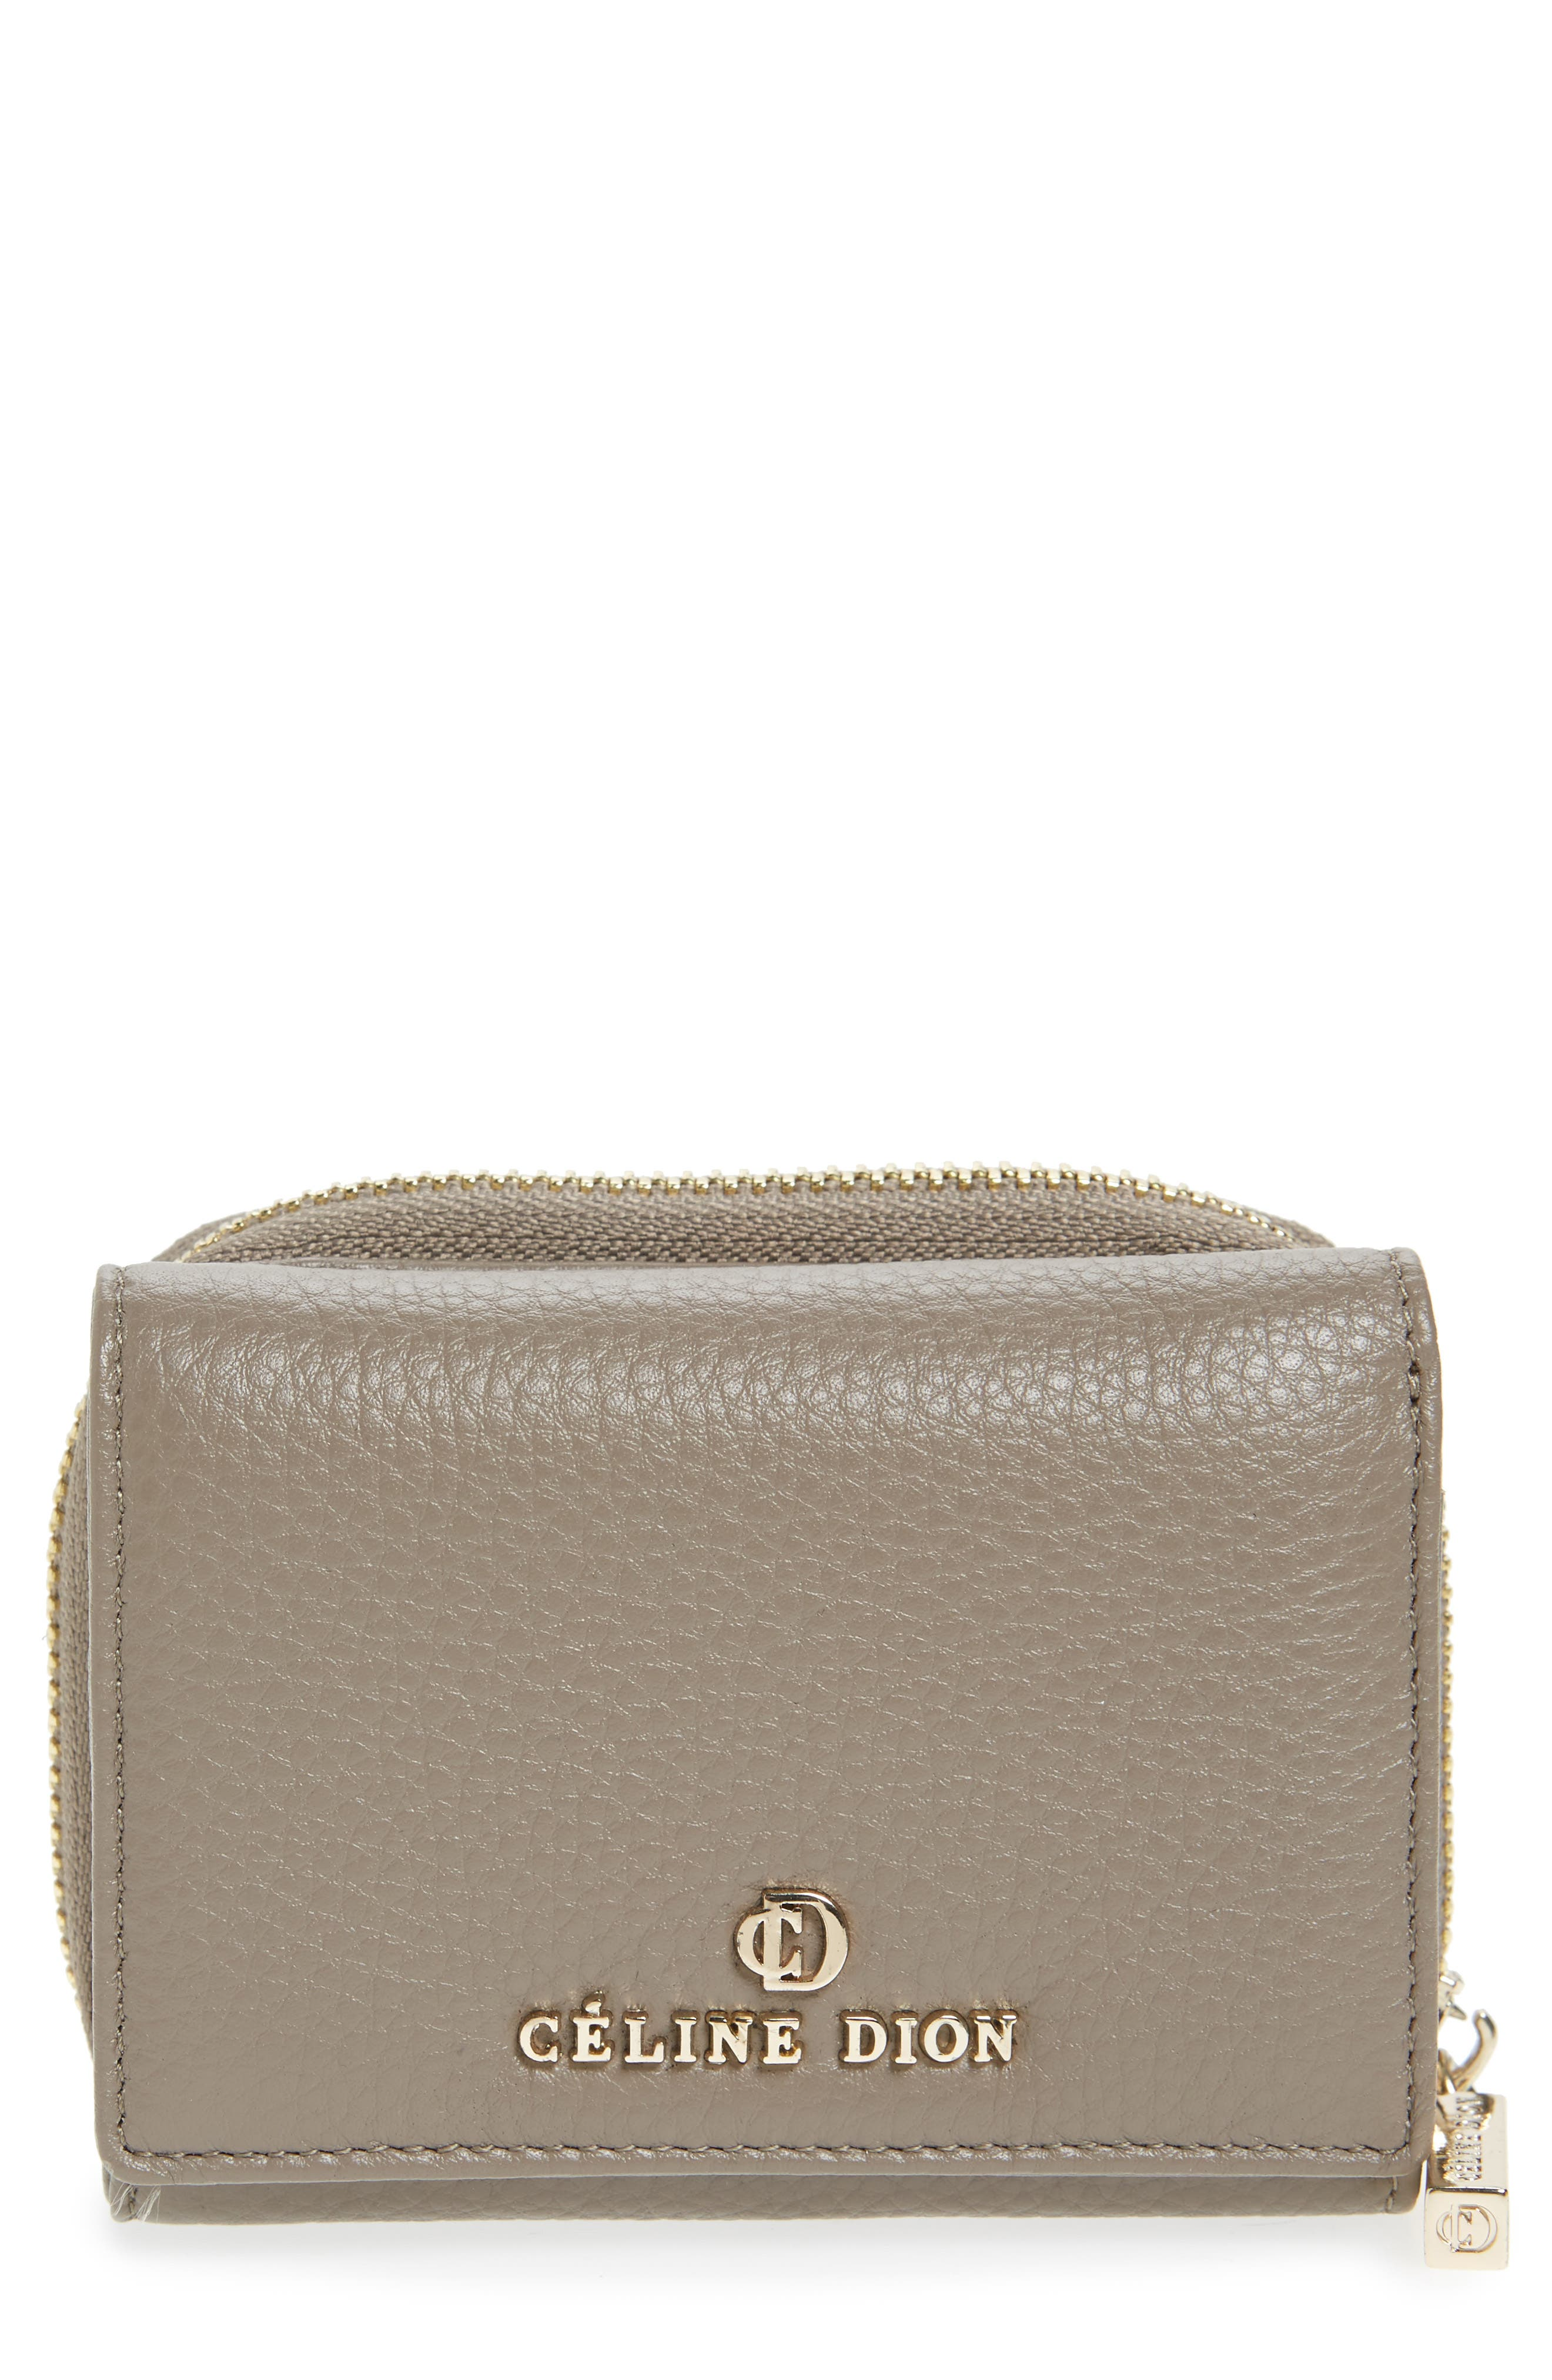 Céline Dion Small Adagio Leather Wallet,                         Main,                         color, Taupe